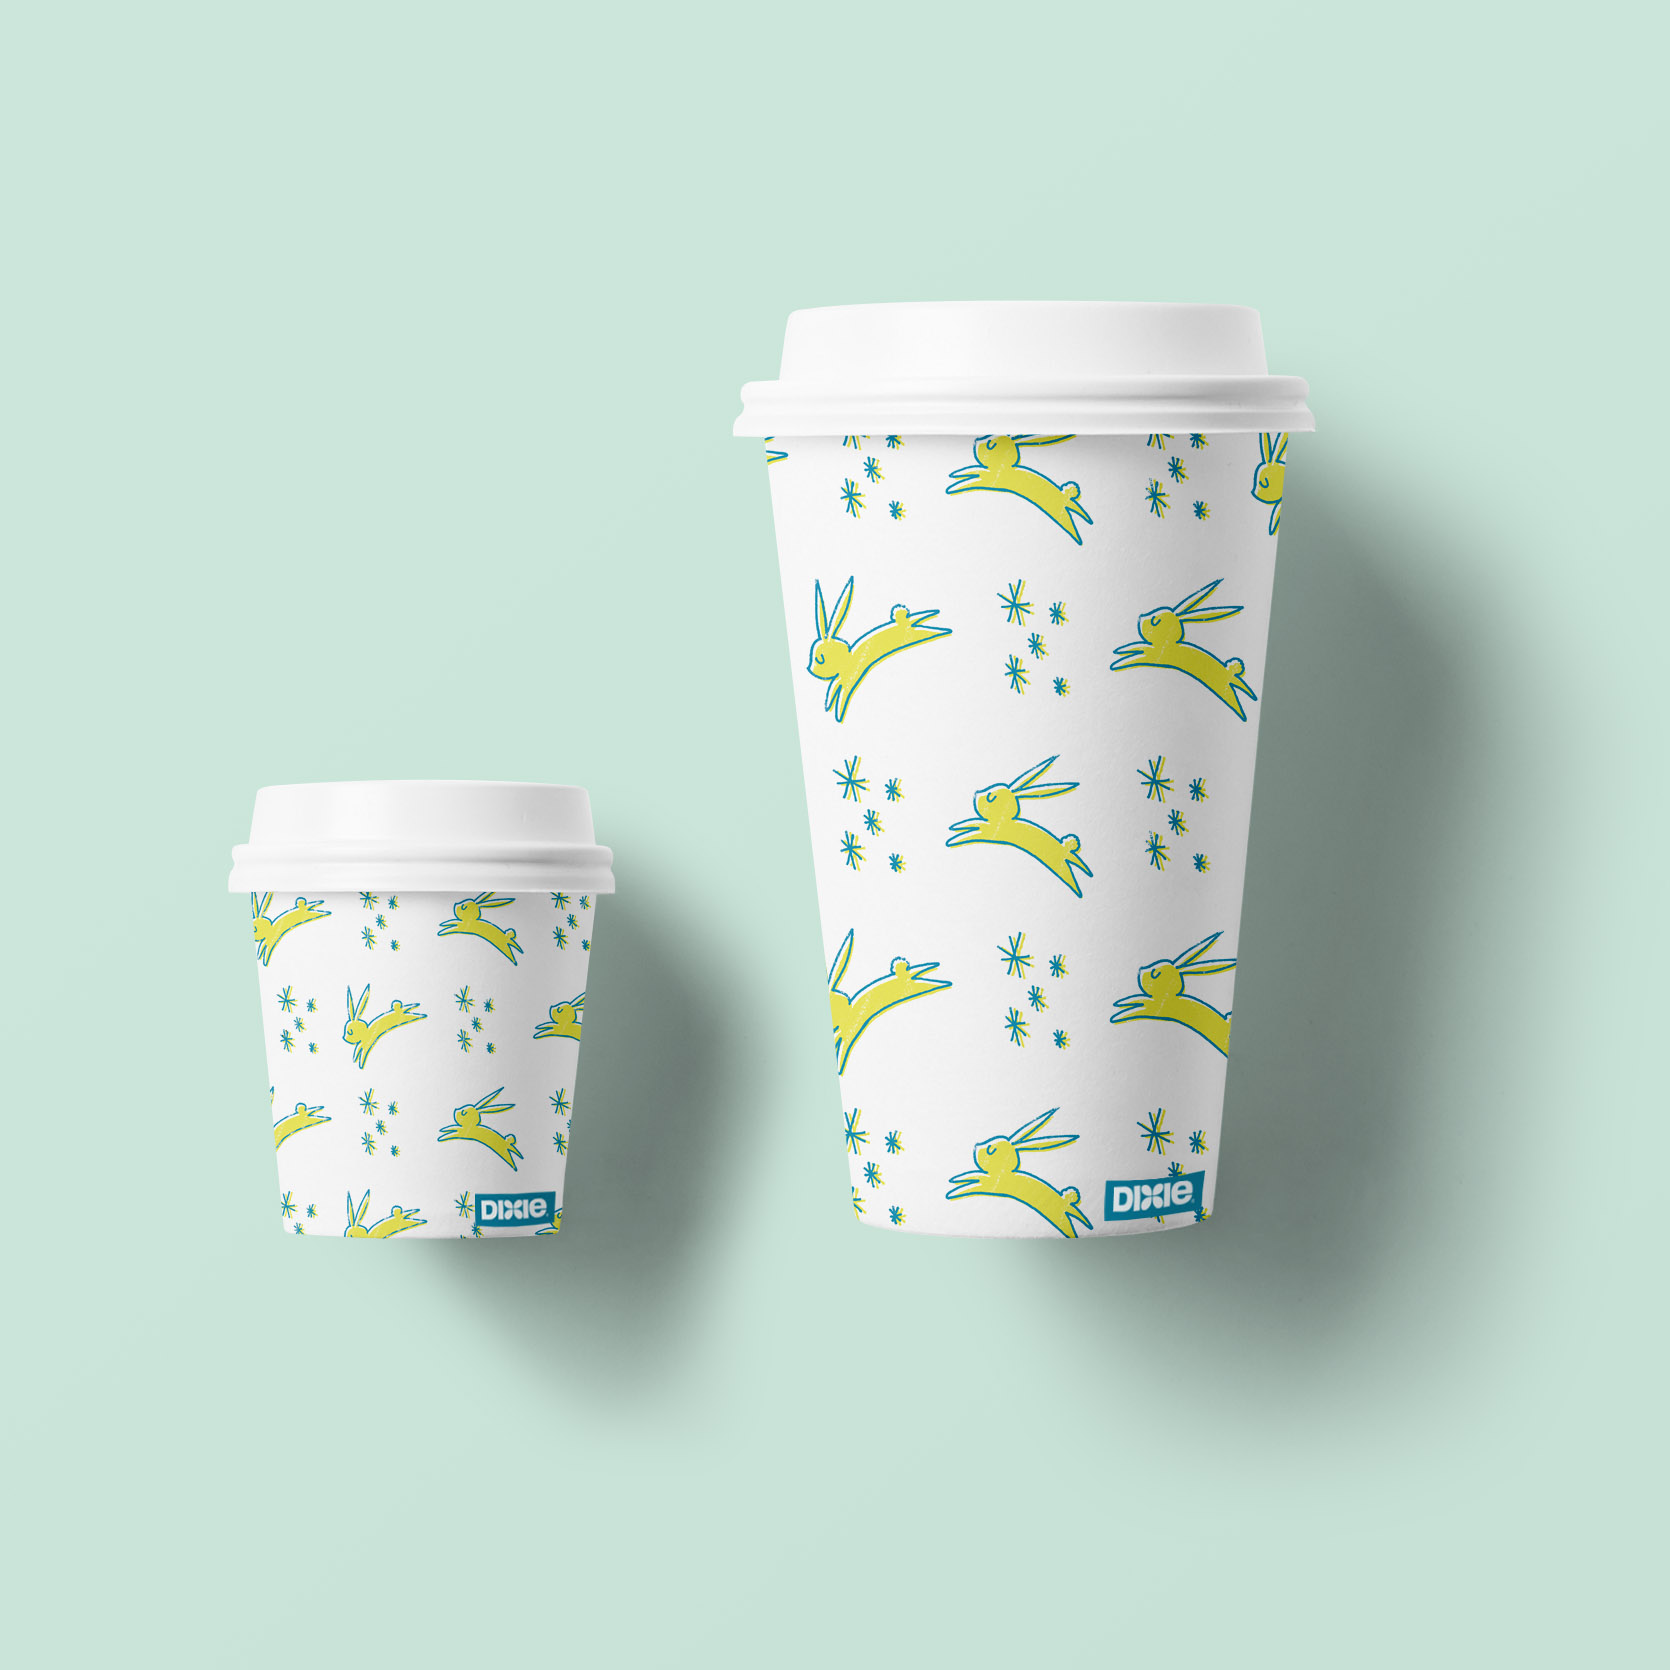 MINI-SYS.COM Shirley Susilo Paper Cup rabbit star blue yellow crop.jpg